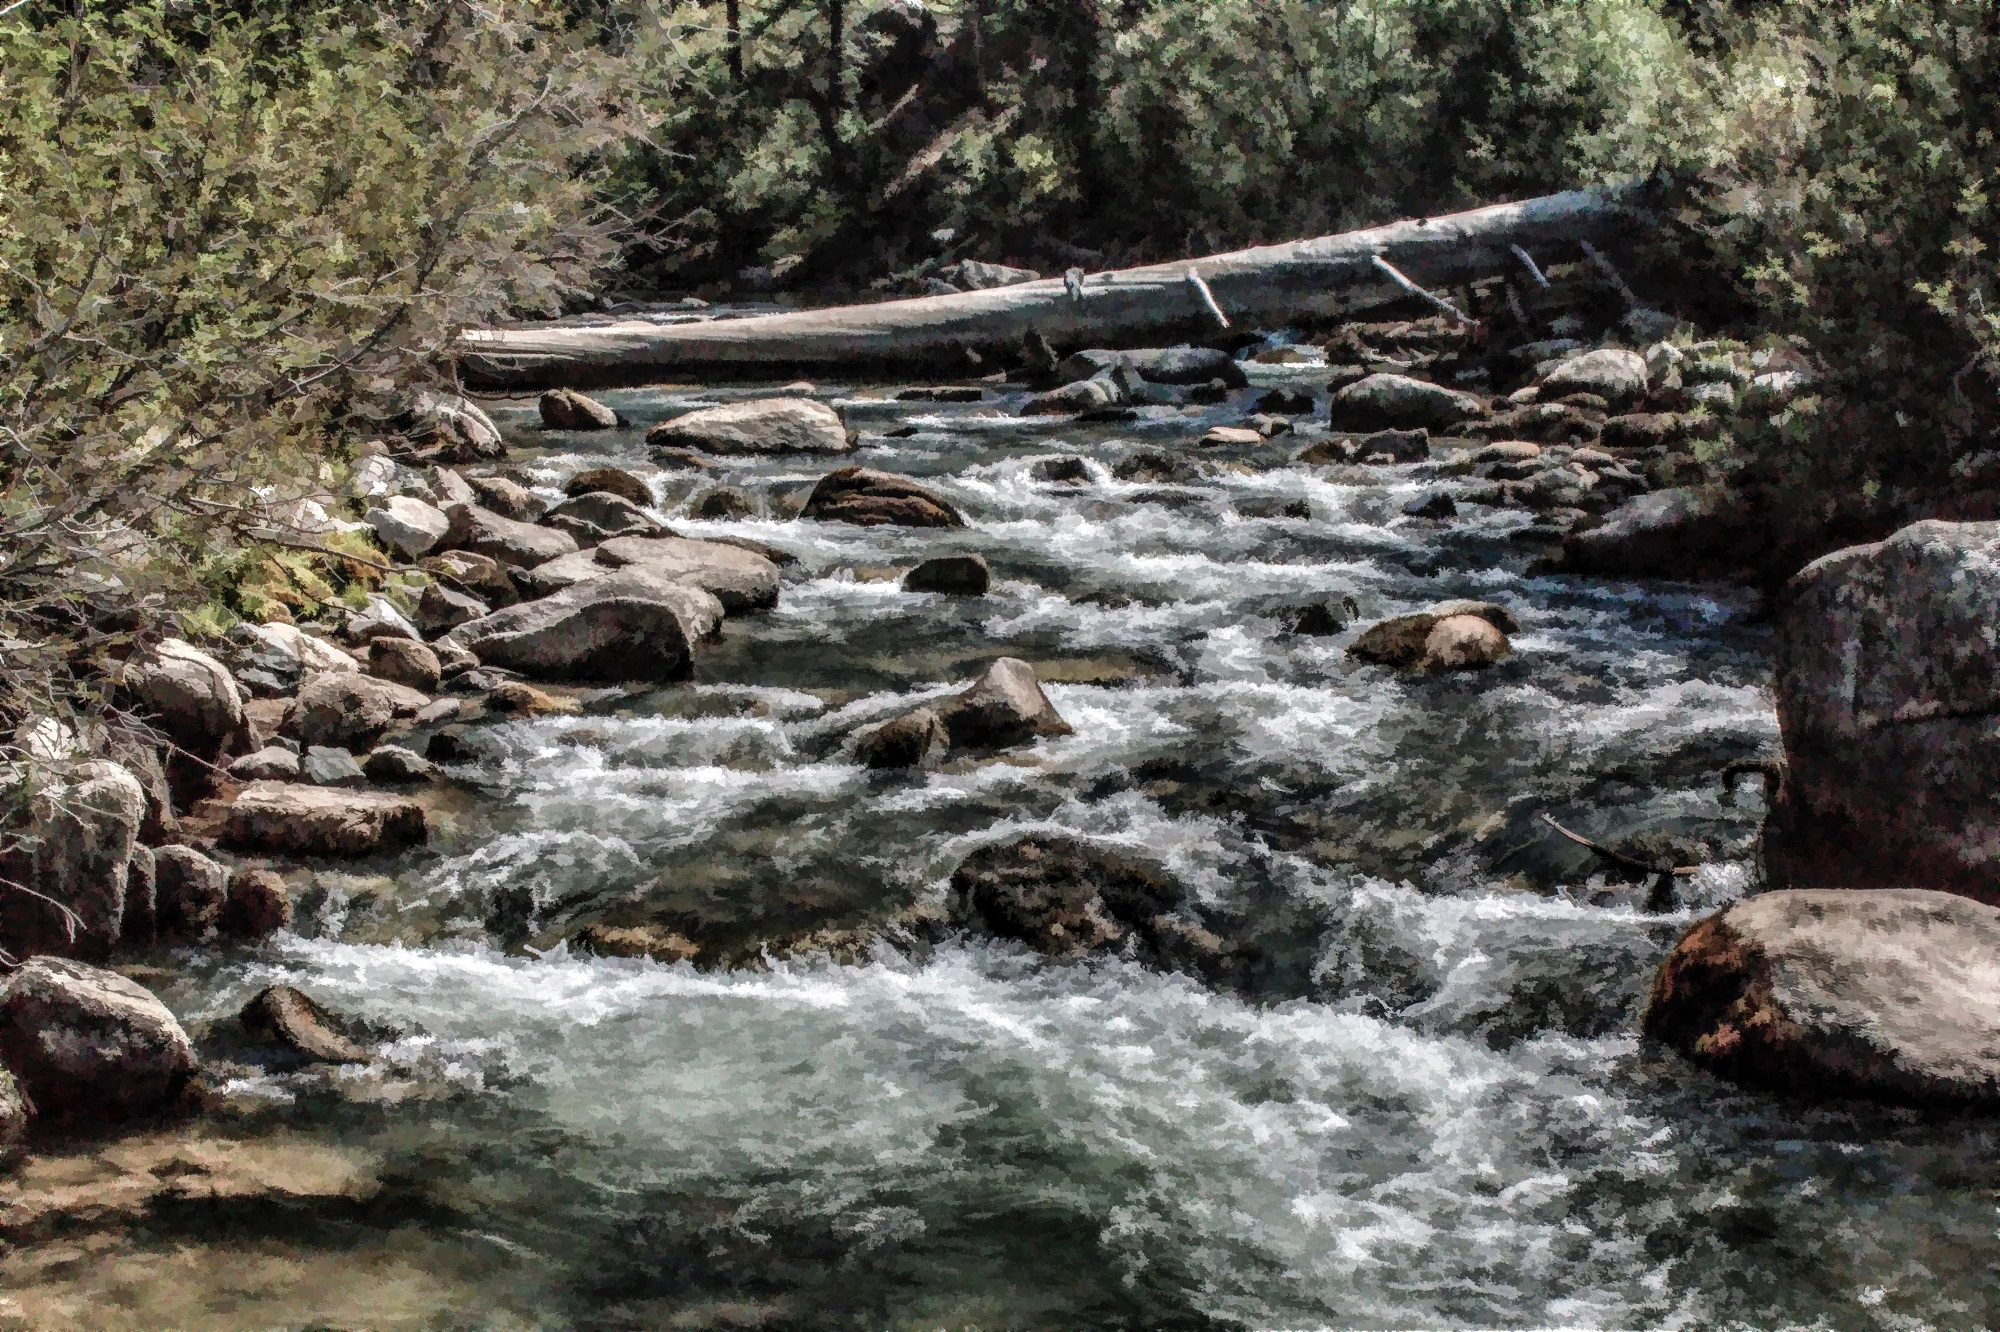 The Stanislaus River Off Highway 4